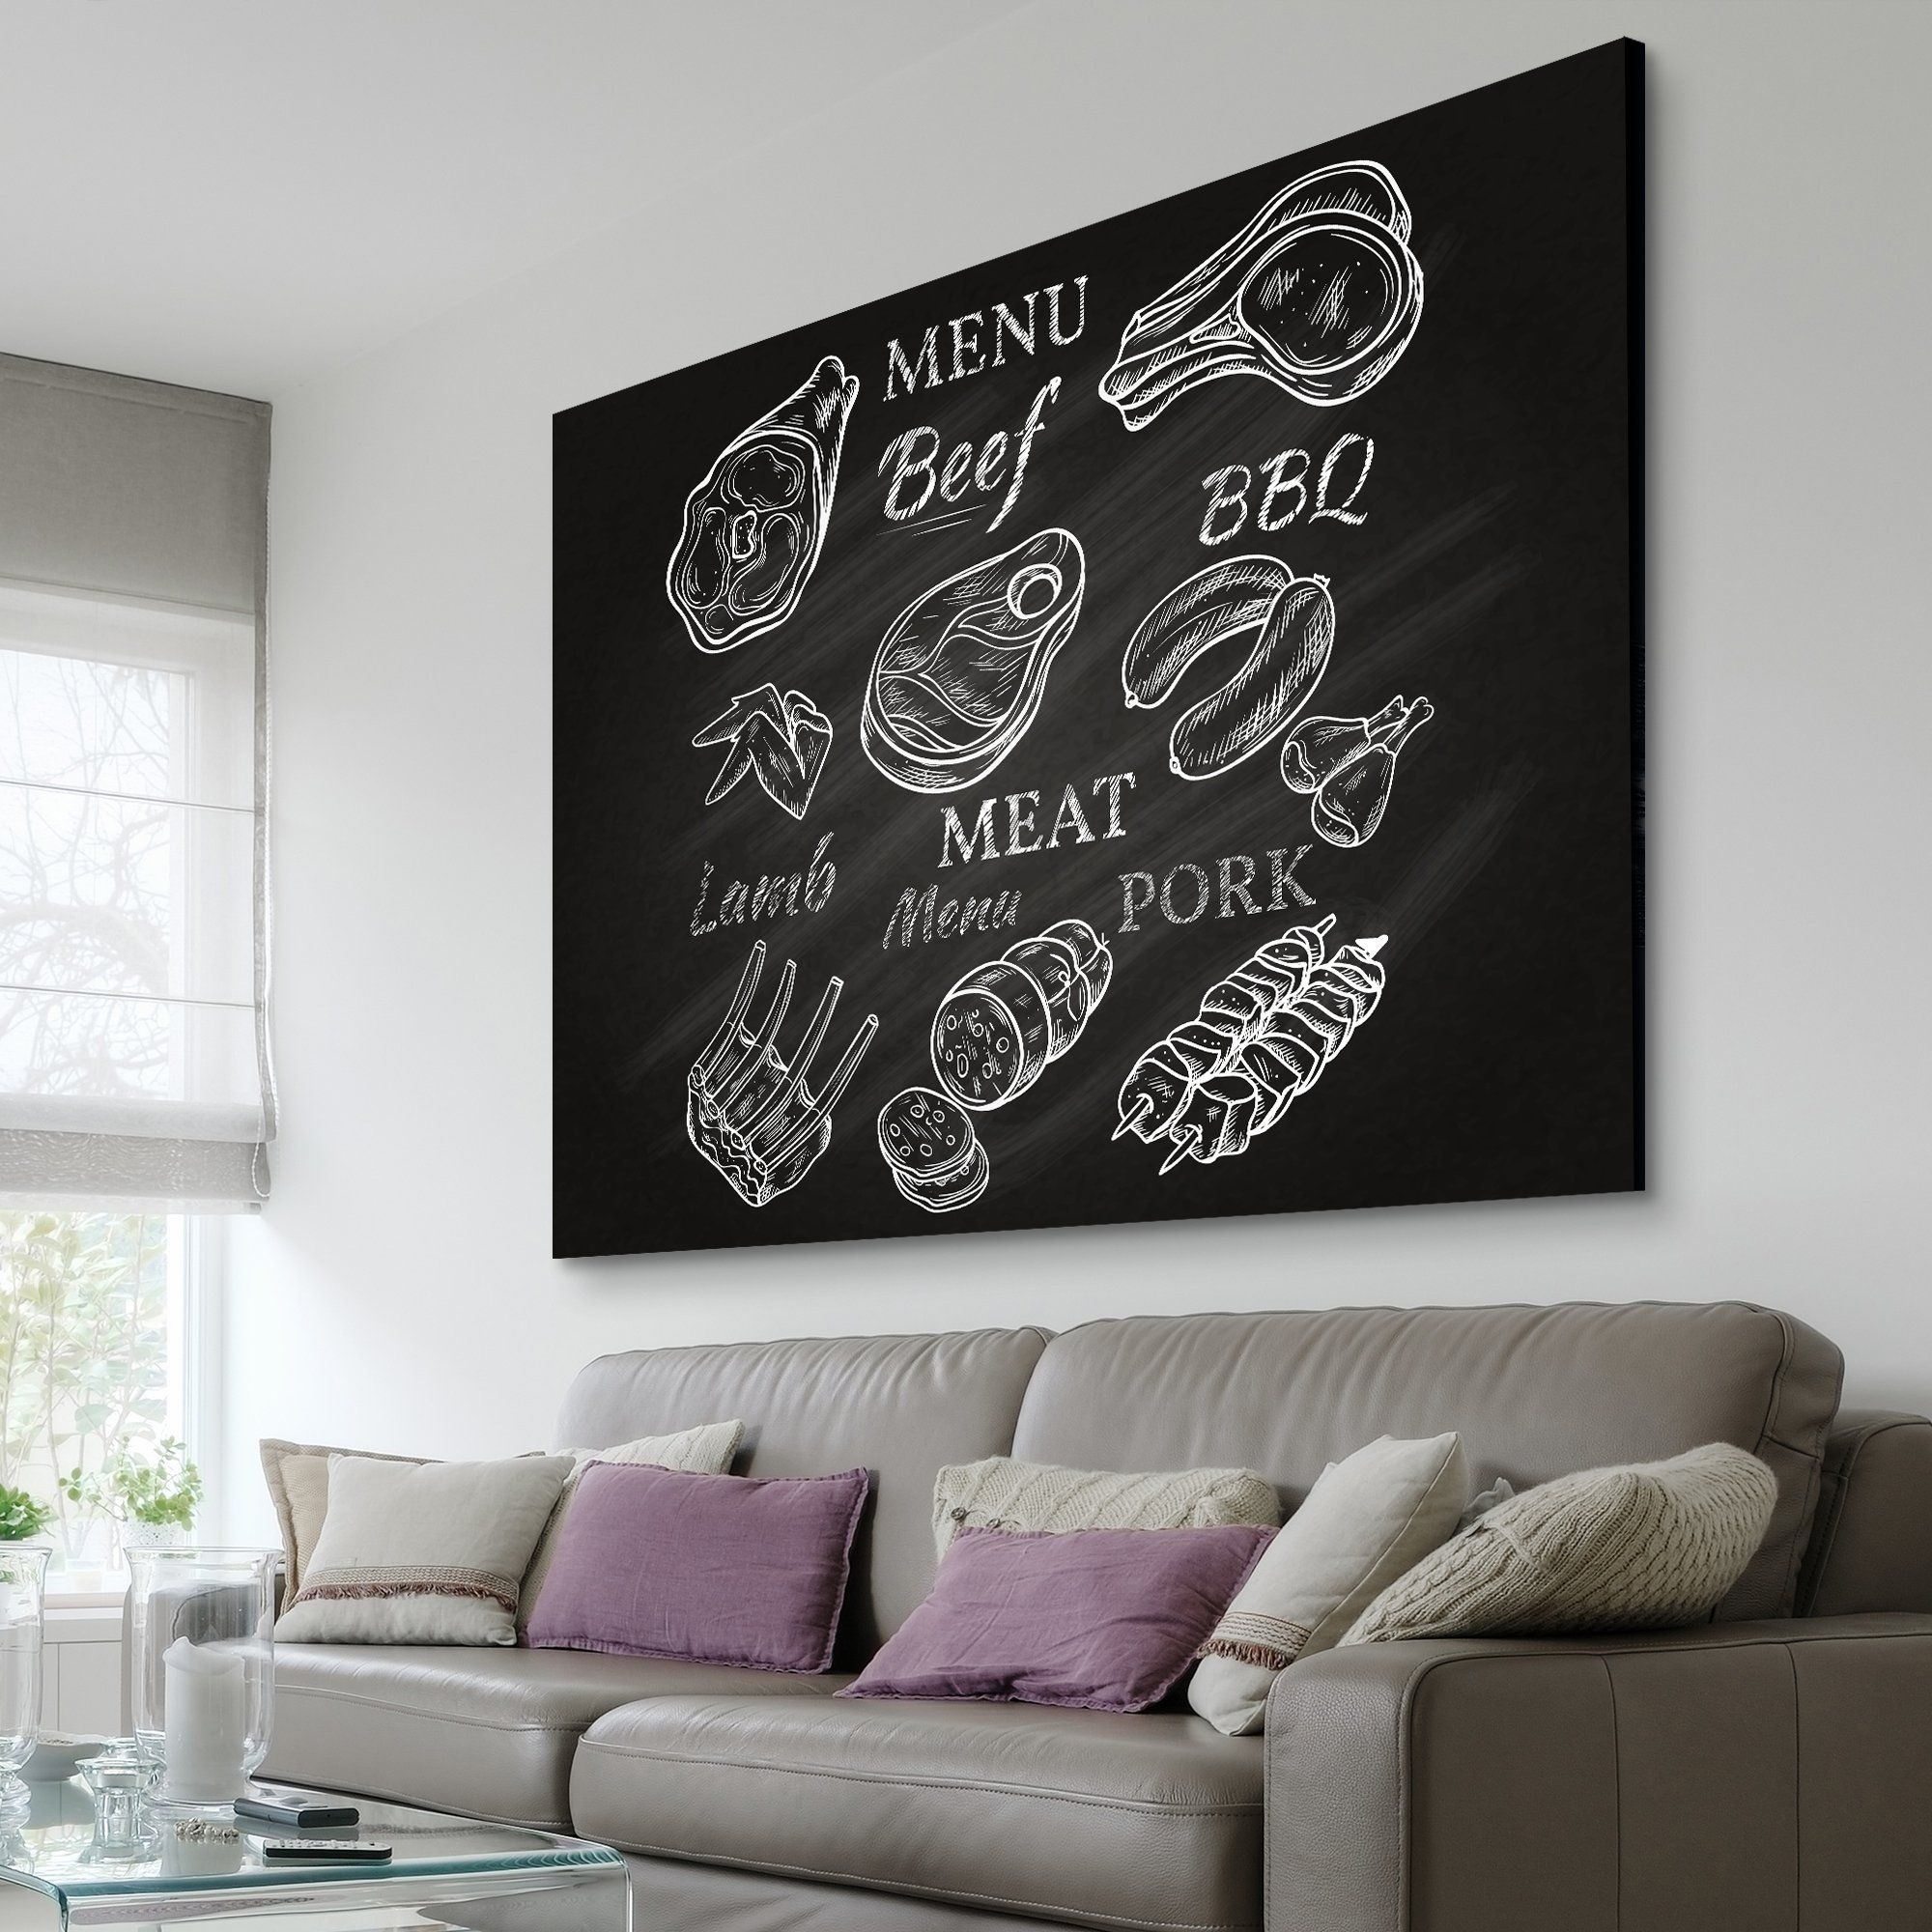 Kitchen Menu wall art